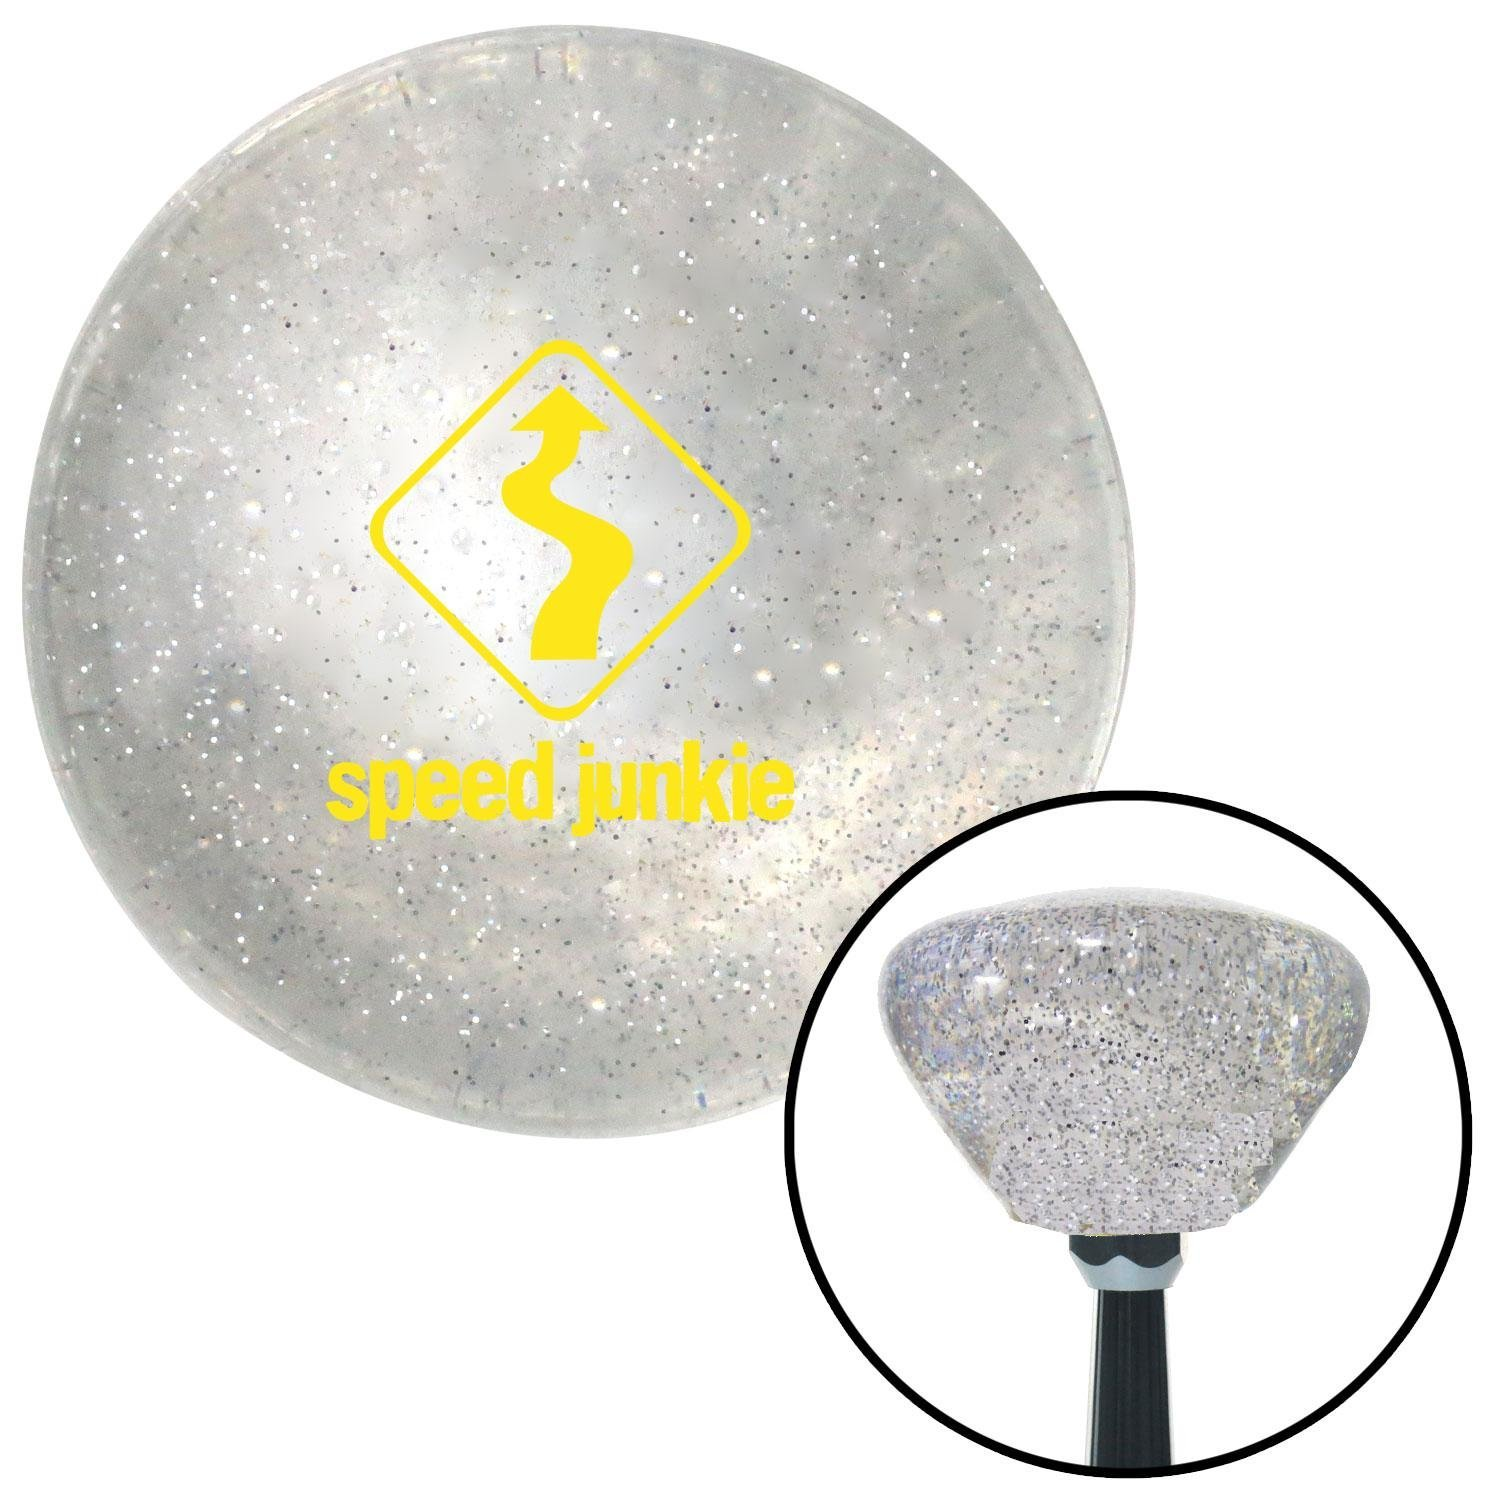 American Shifter 164024 Clear Retro Metal Flake Shift Knob with M16 x 1.5 Insert Yellow Speed Junkie